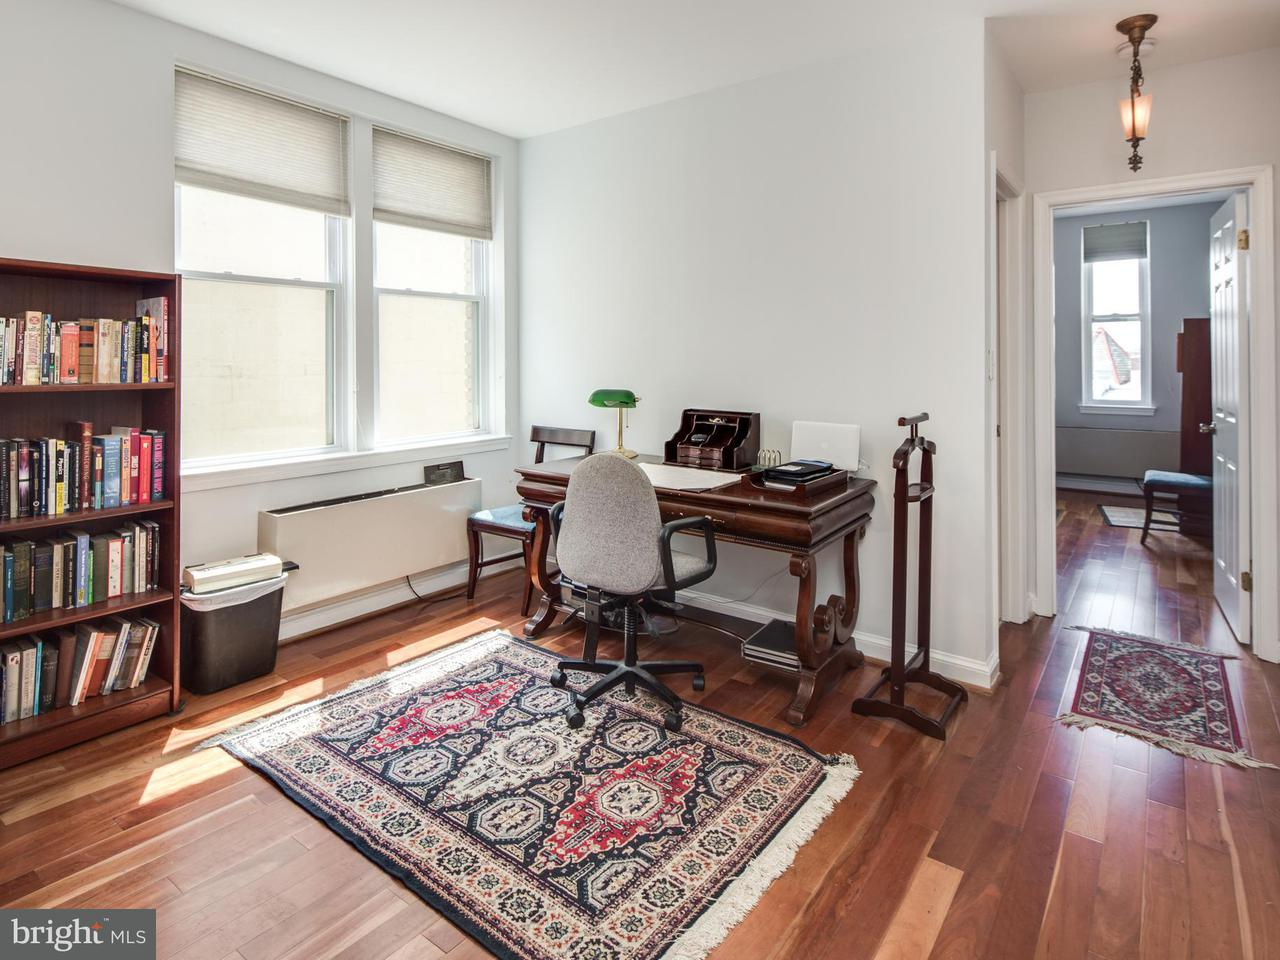 Additional photo for property listing at 1810 California St NW #304  Washington, District Of Columbia 20009 United States